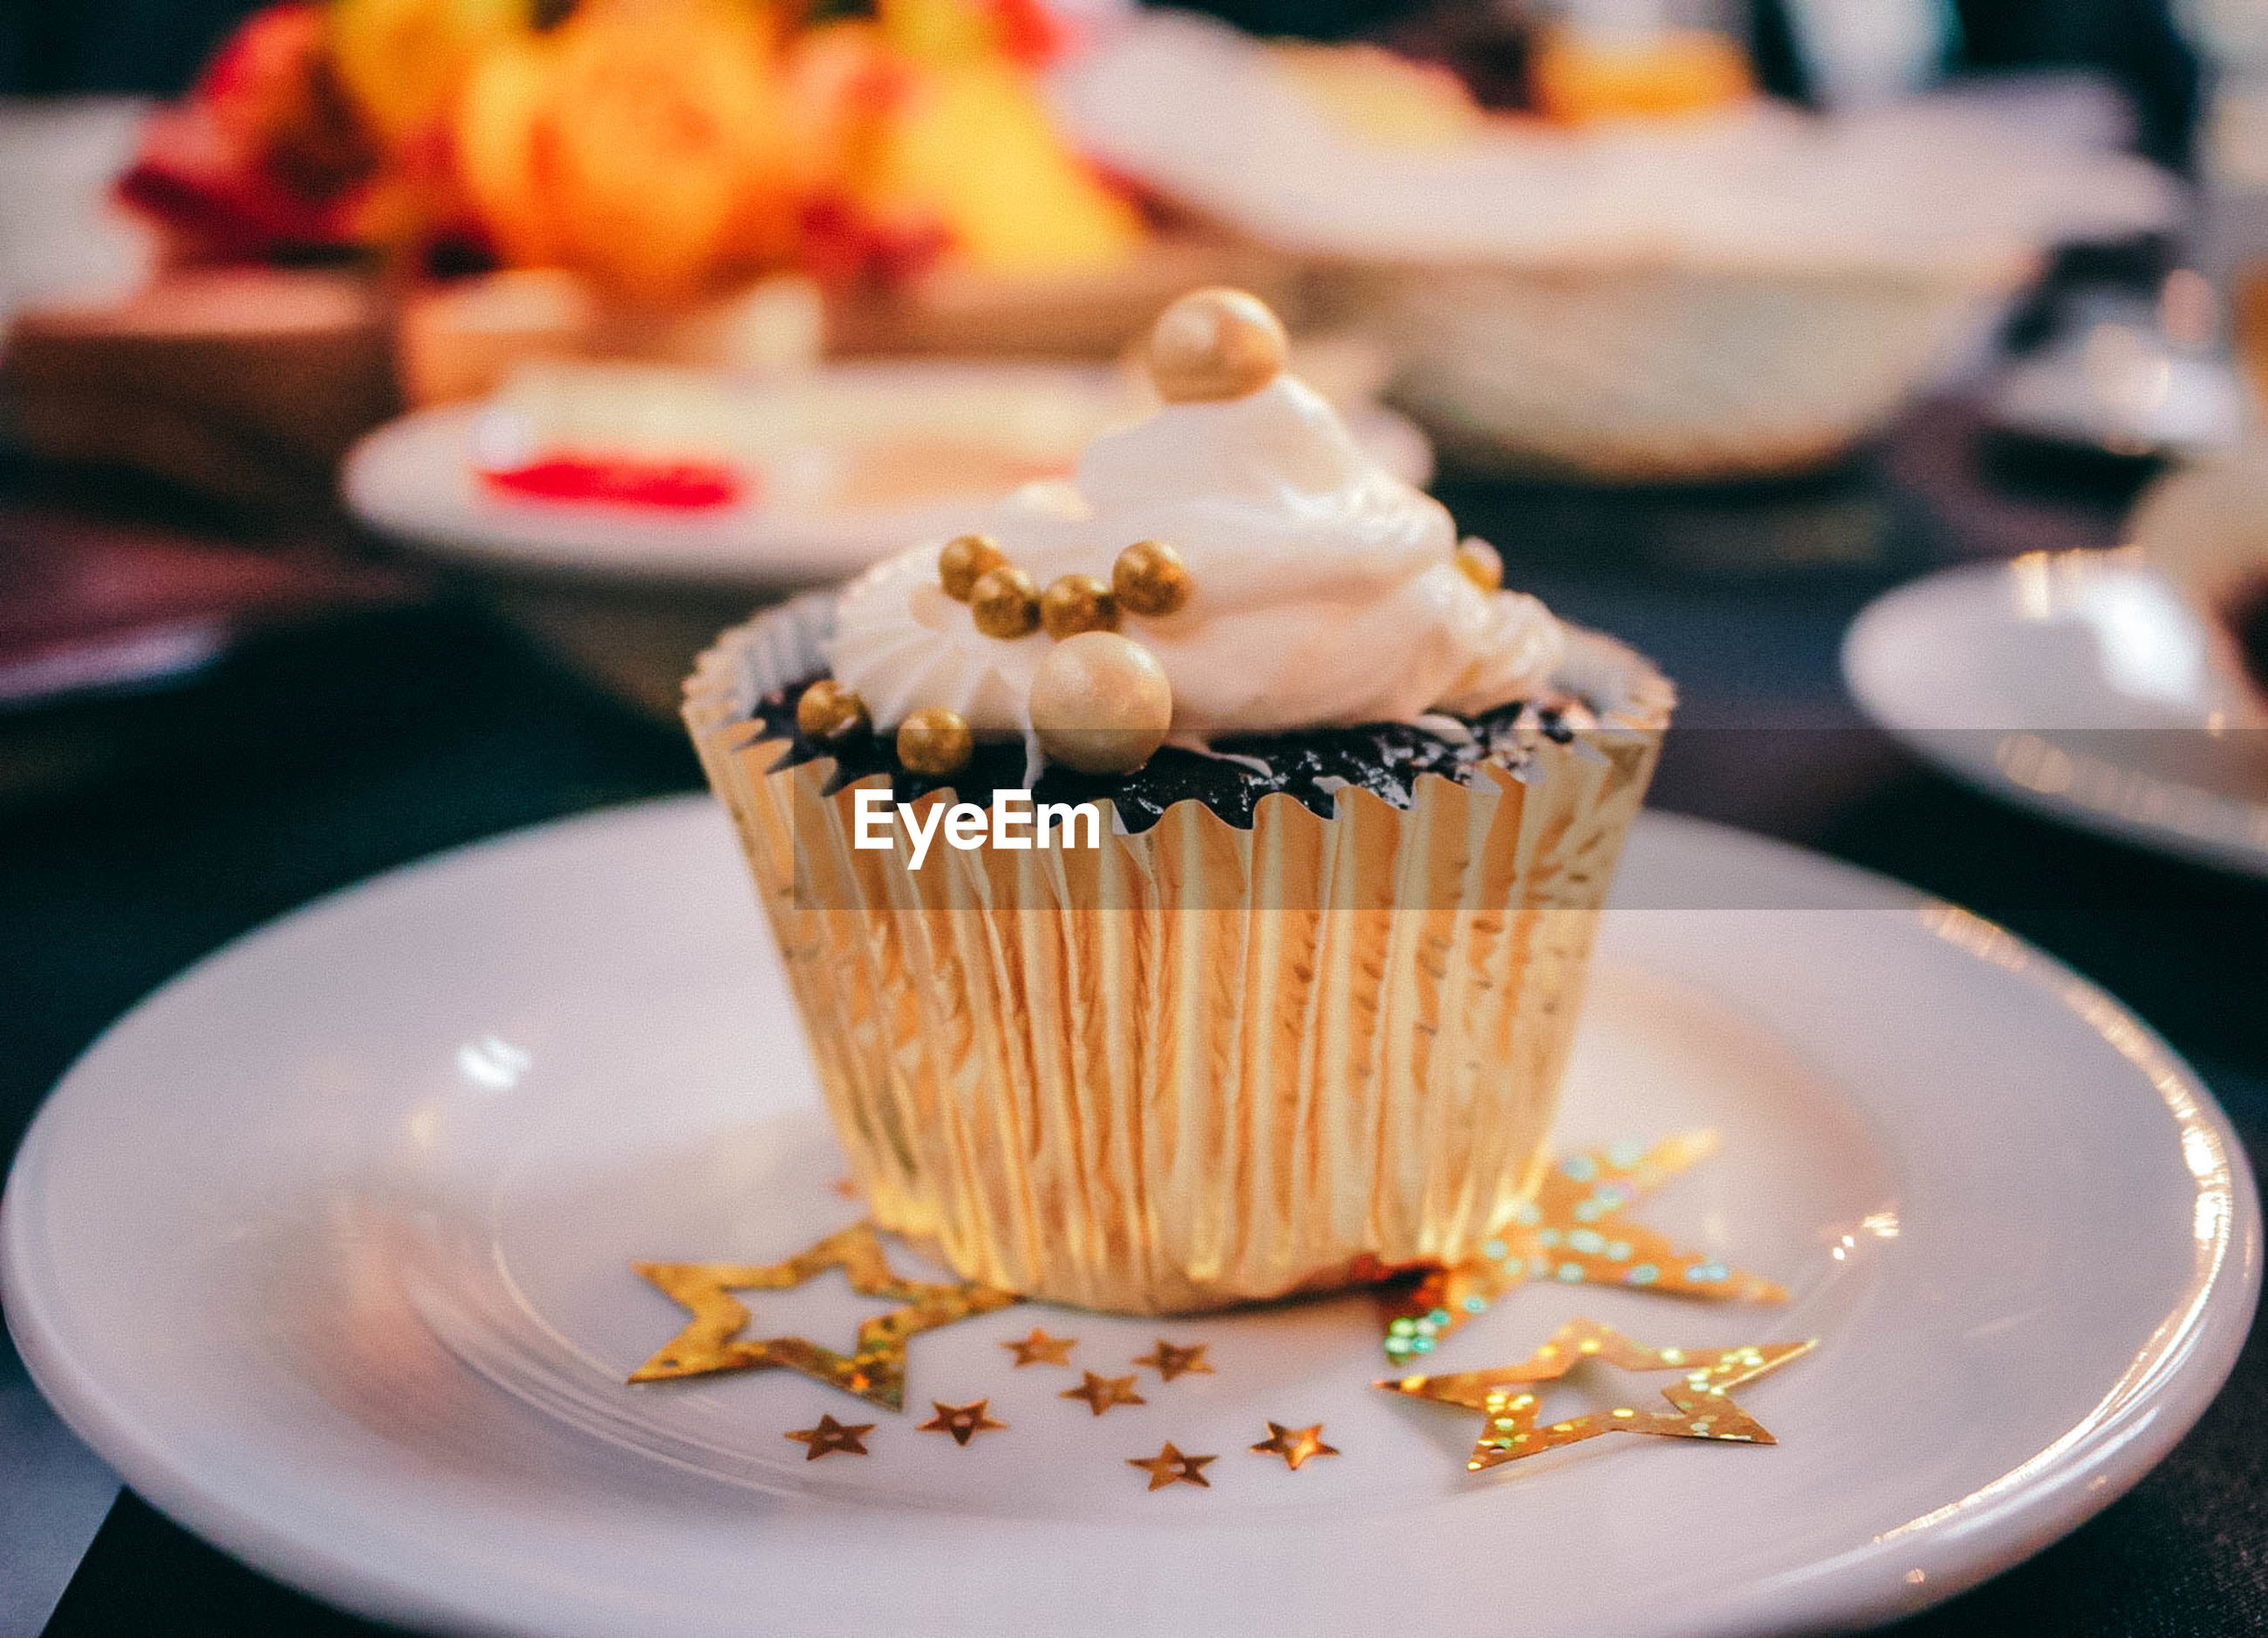 Close-up of cupcake served in plate on table